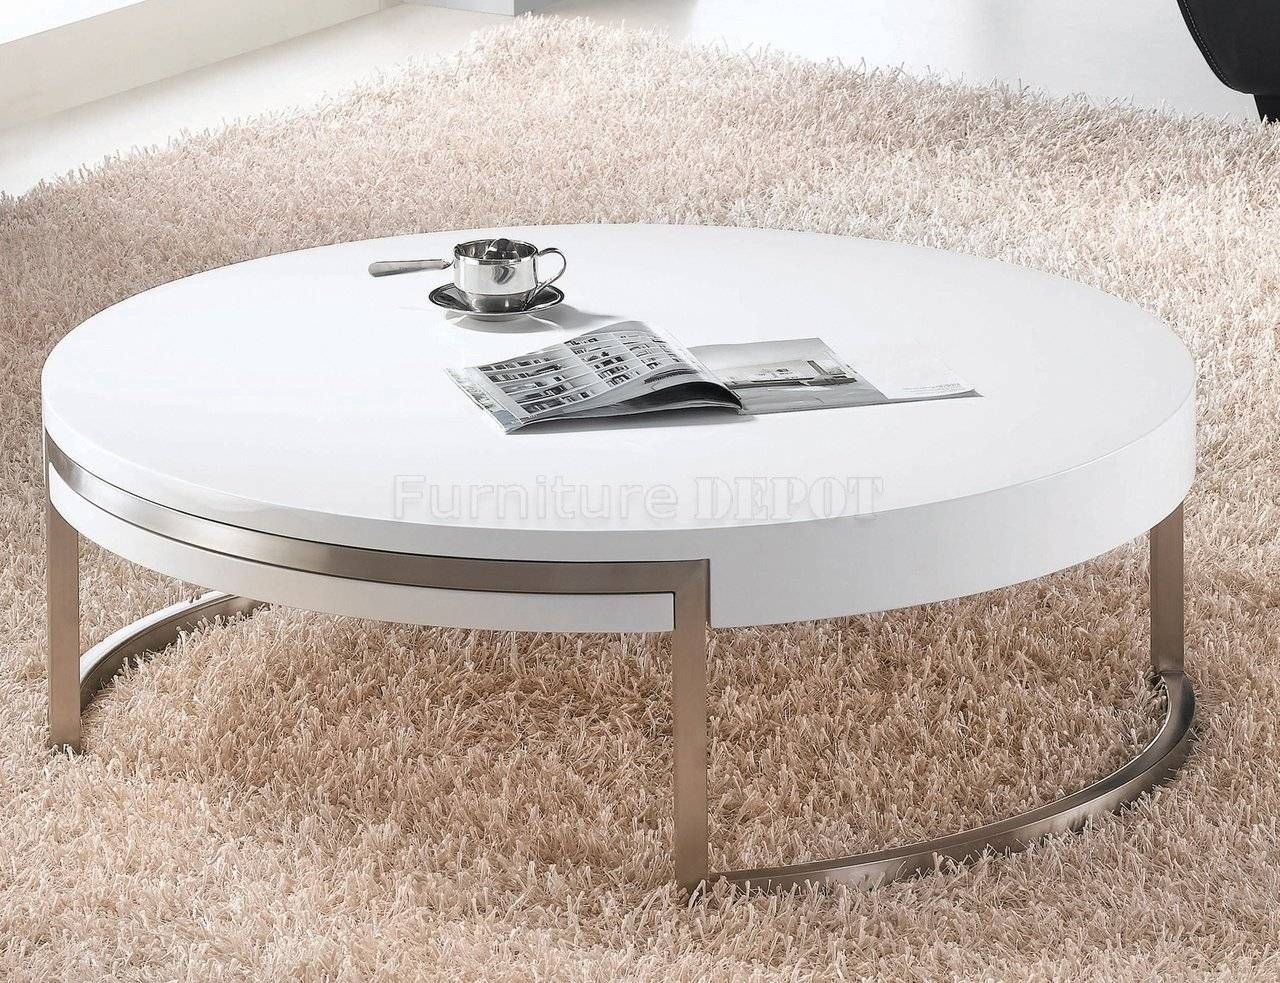 White High Gloss Round Coffee Table - Starrkingschool intended for Round High Gloss Coffee Tables (Image 28 of 30)